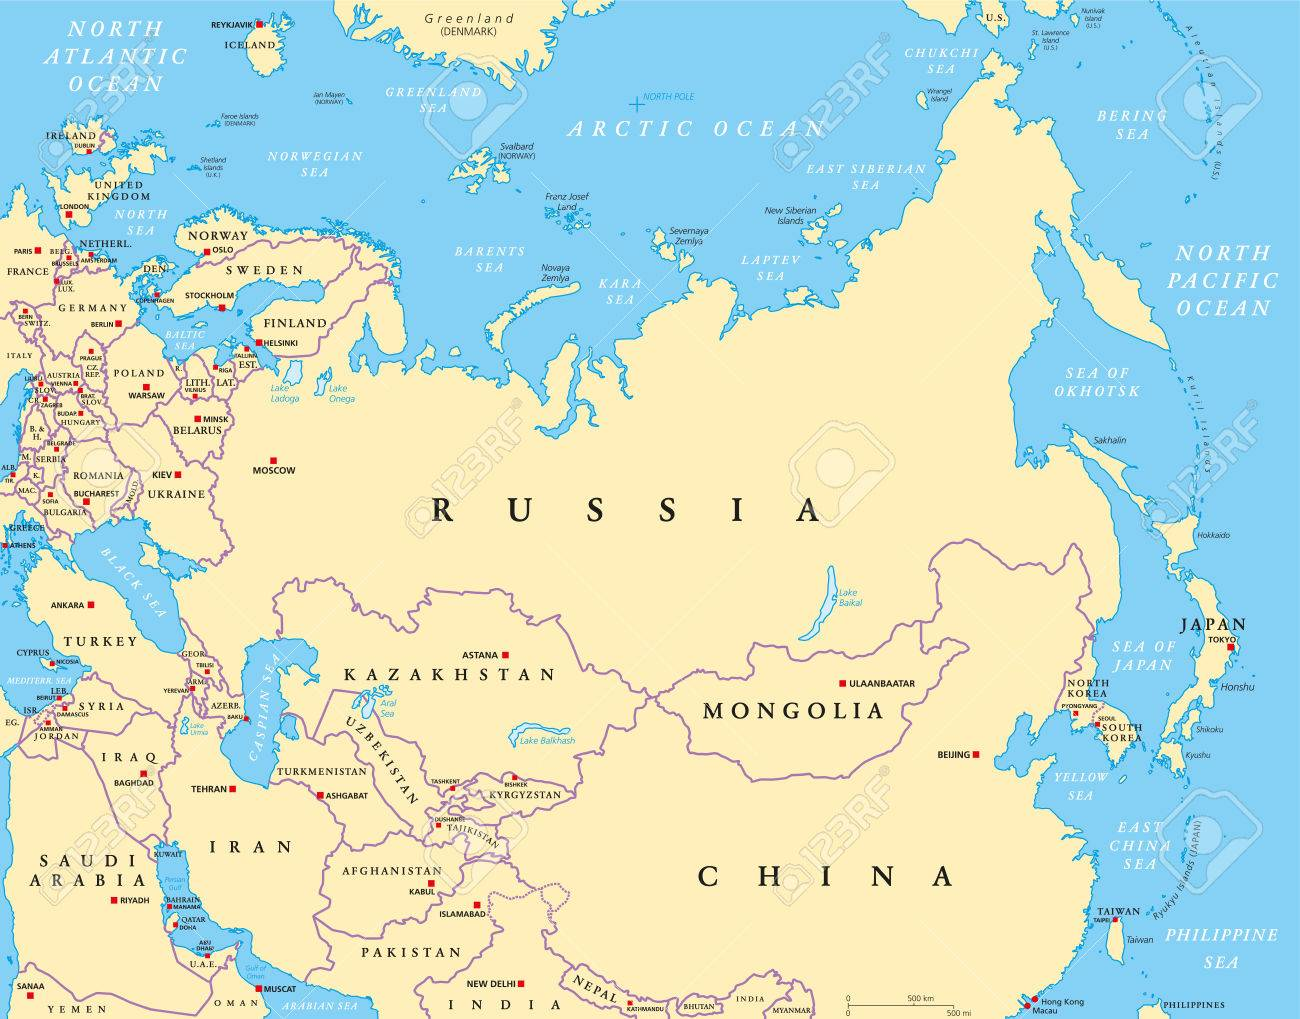 Eurasia Political Map With Capitals And National Borders. Combined